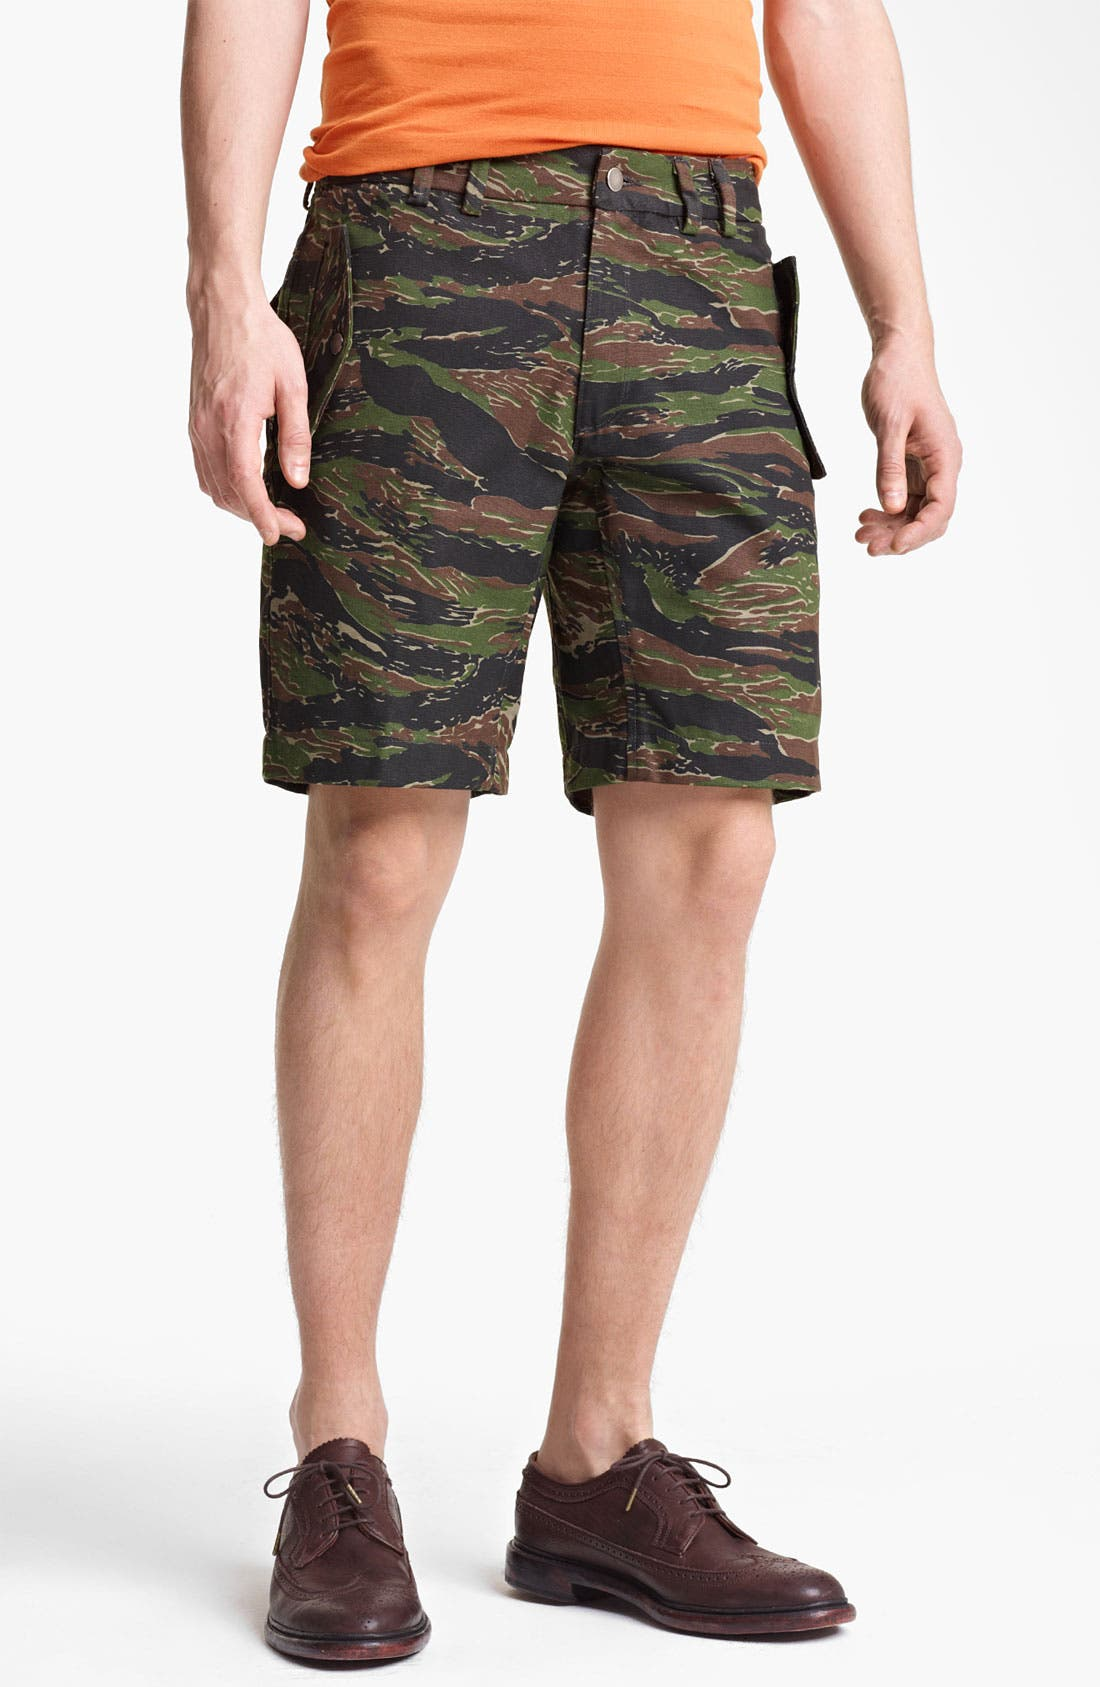 Alternate Image 1 Selected - Field Scout 'Recon' Camo Shorts